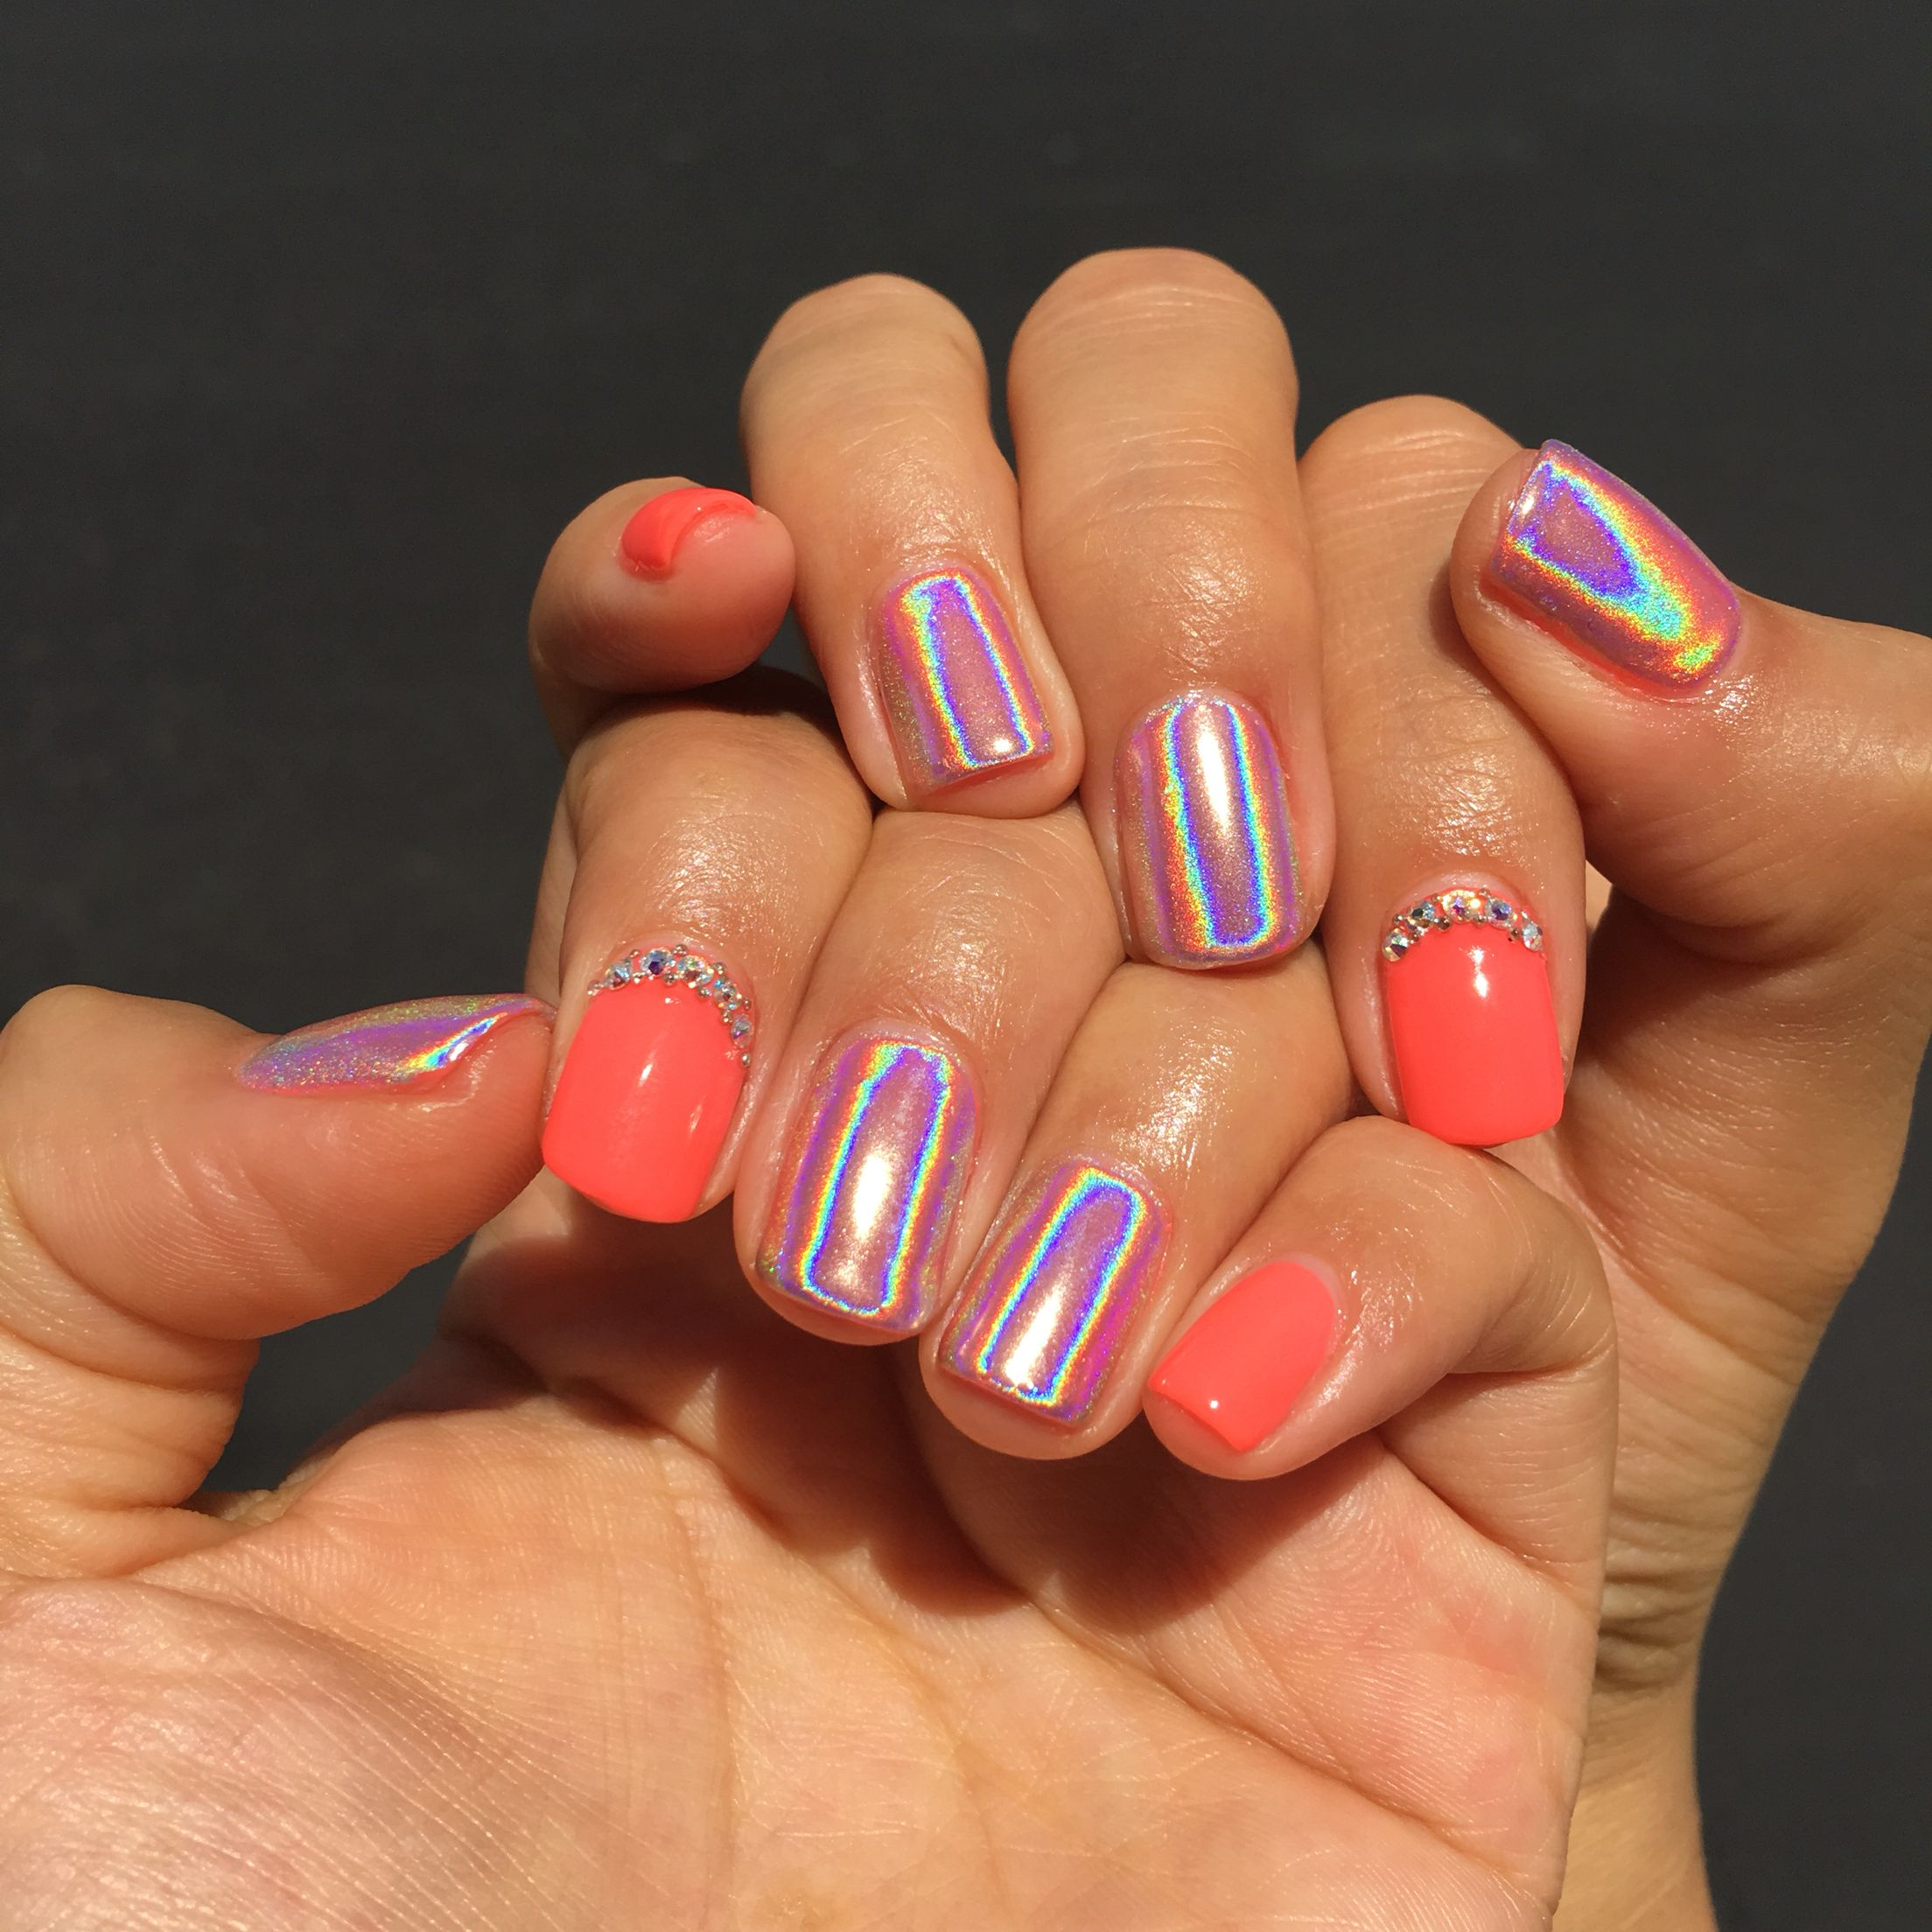 Coral Gel Halo Nails #Nails #Gel #Summer #Coral #Nailsbycatie #Halo ...